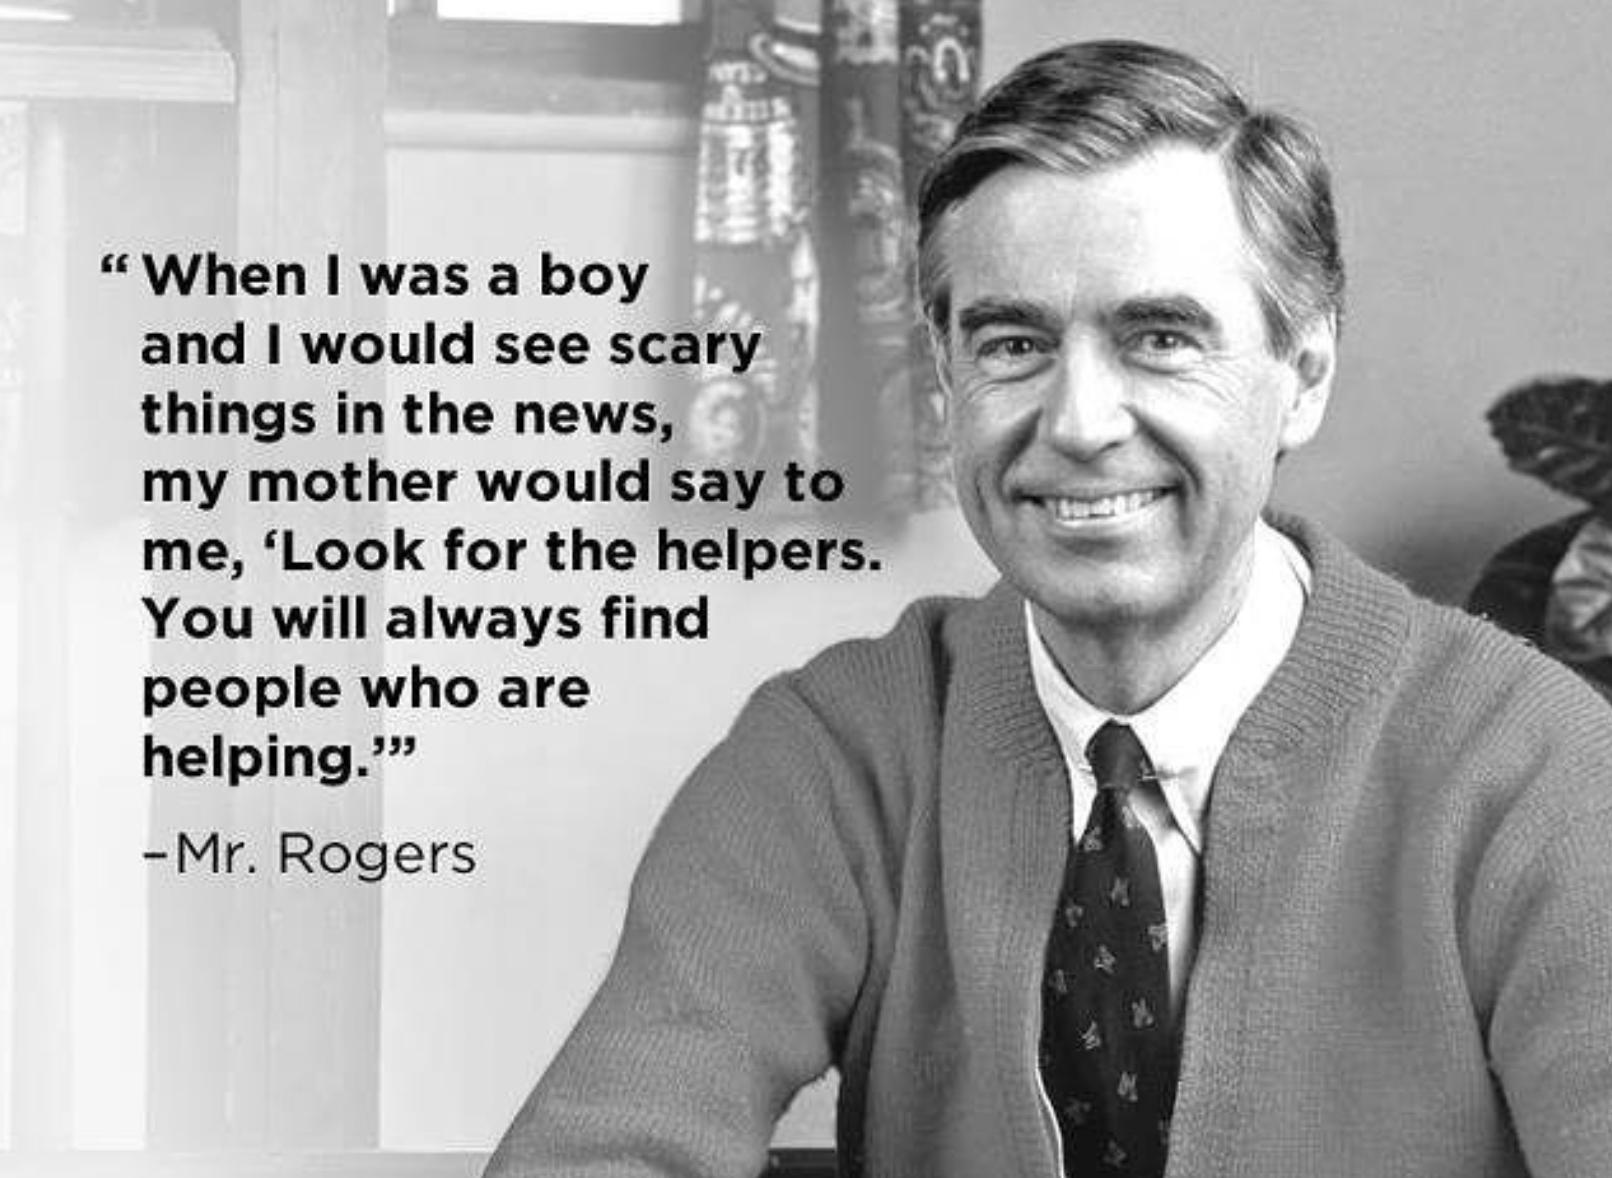 [Image] Be a helper